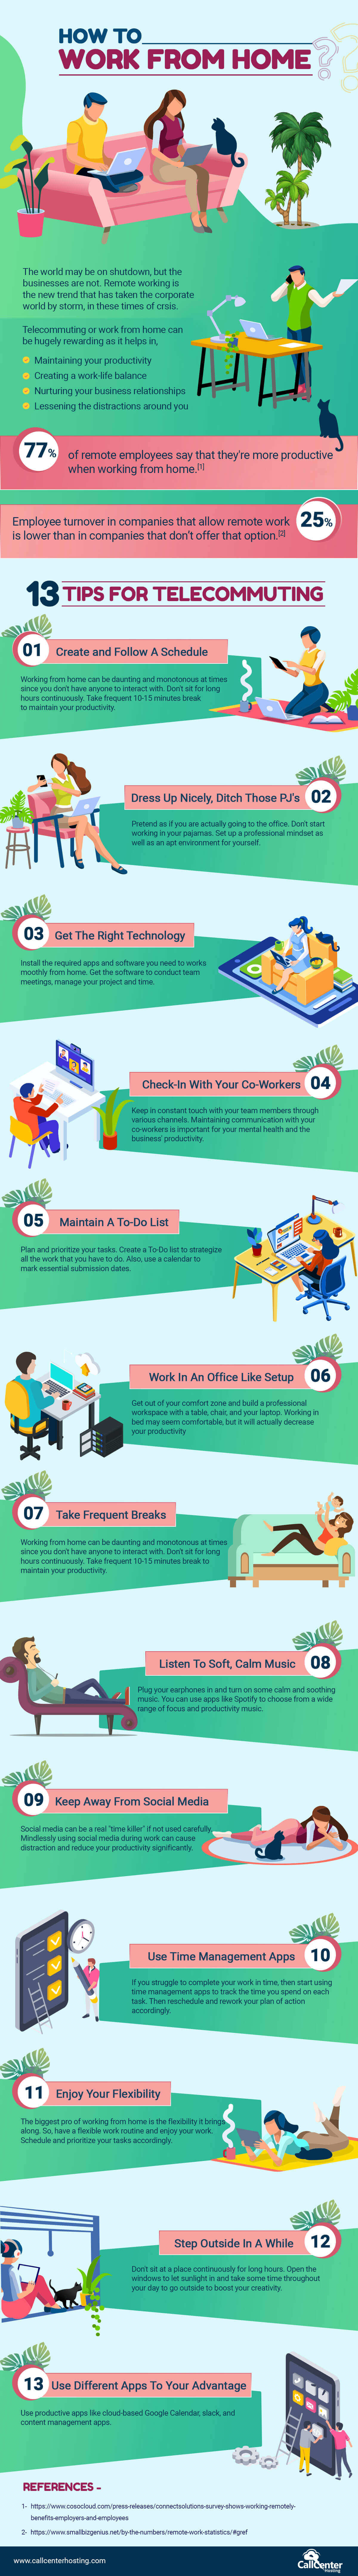 Tips For Telecommuting To Work From Home